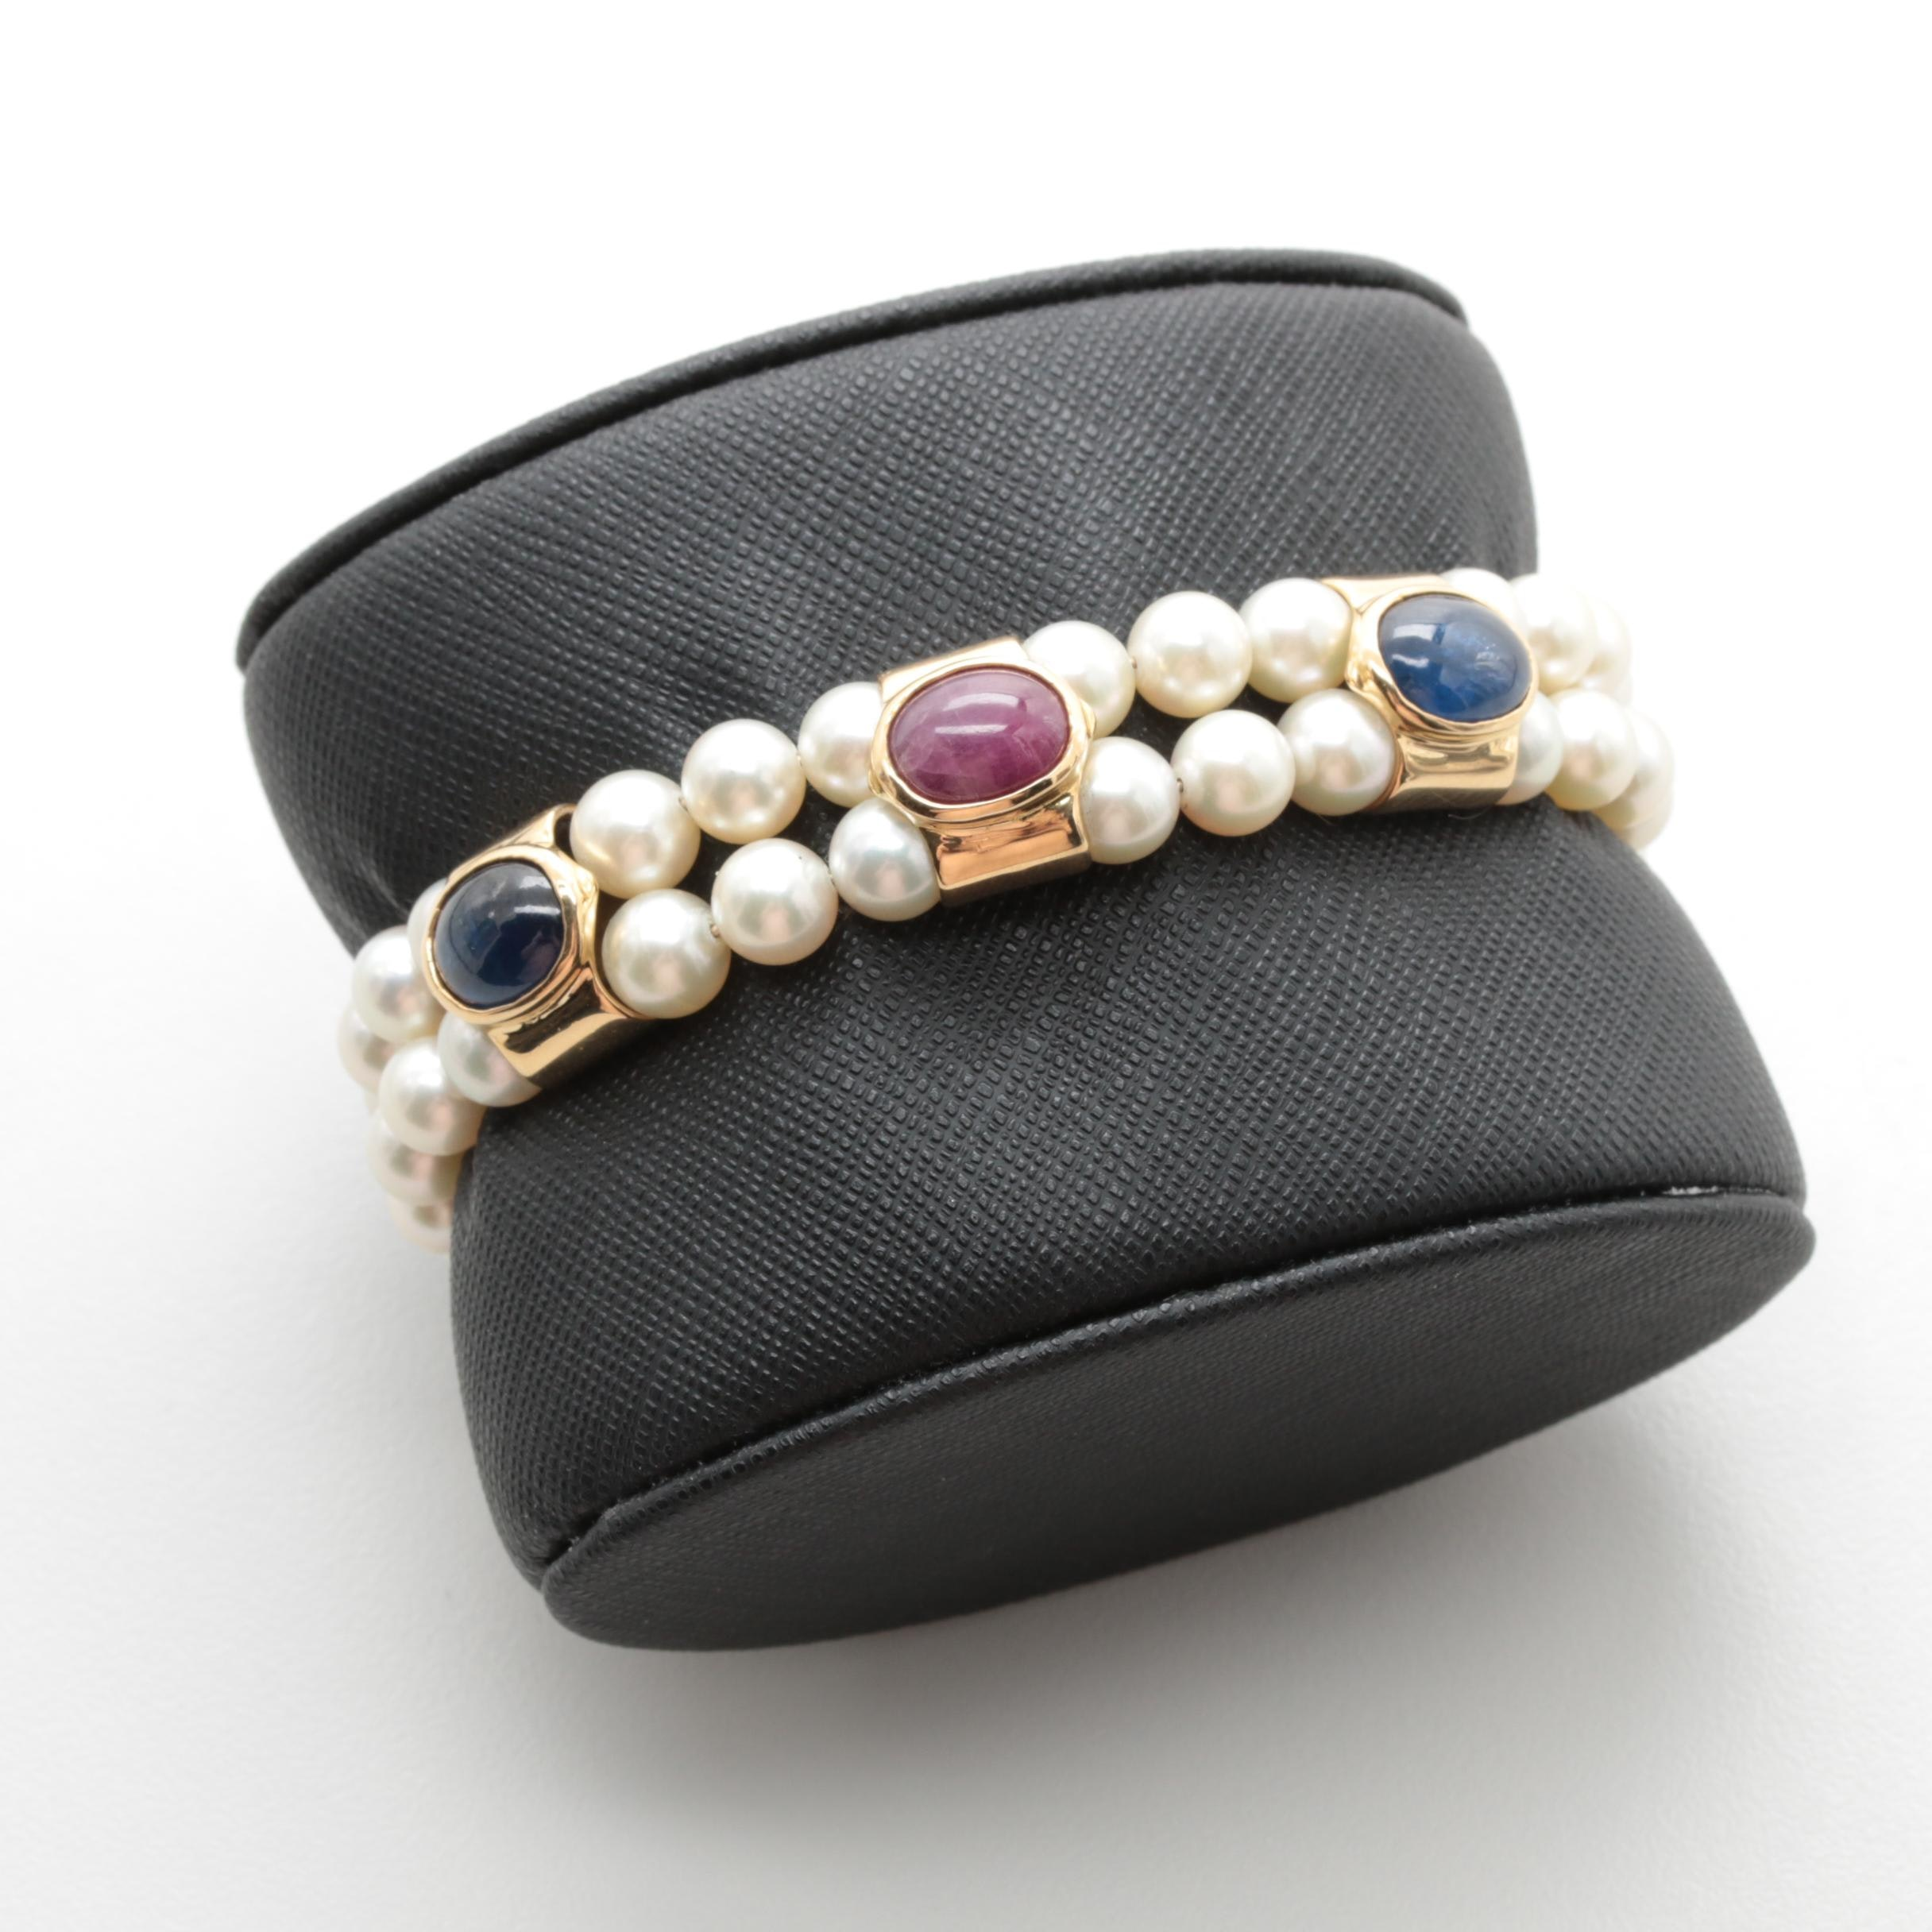 18K Yellow Ruby, Sapphire and Cultured Pearl Bracelet